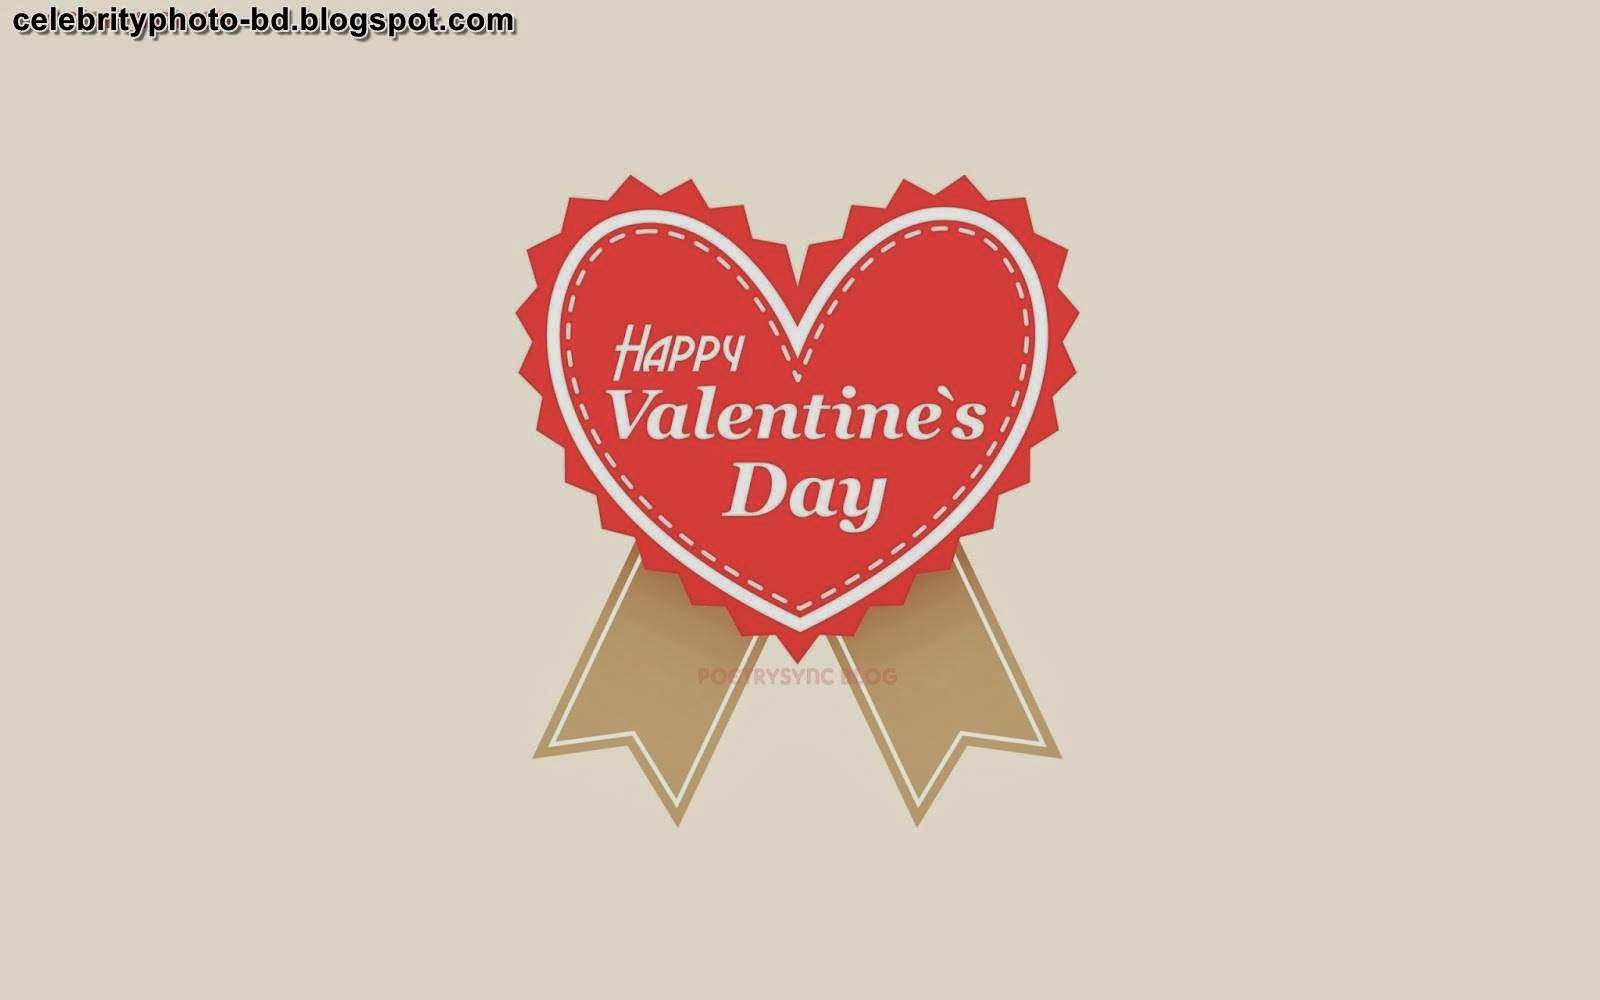 Valentines+Day+Latest+Lovely+Hearts+HD+Wallpapers+and+Wishes+Image+Cards+2014001